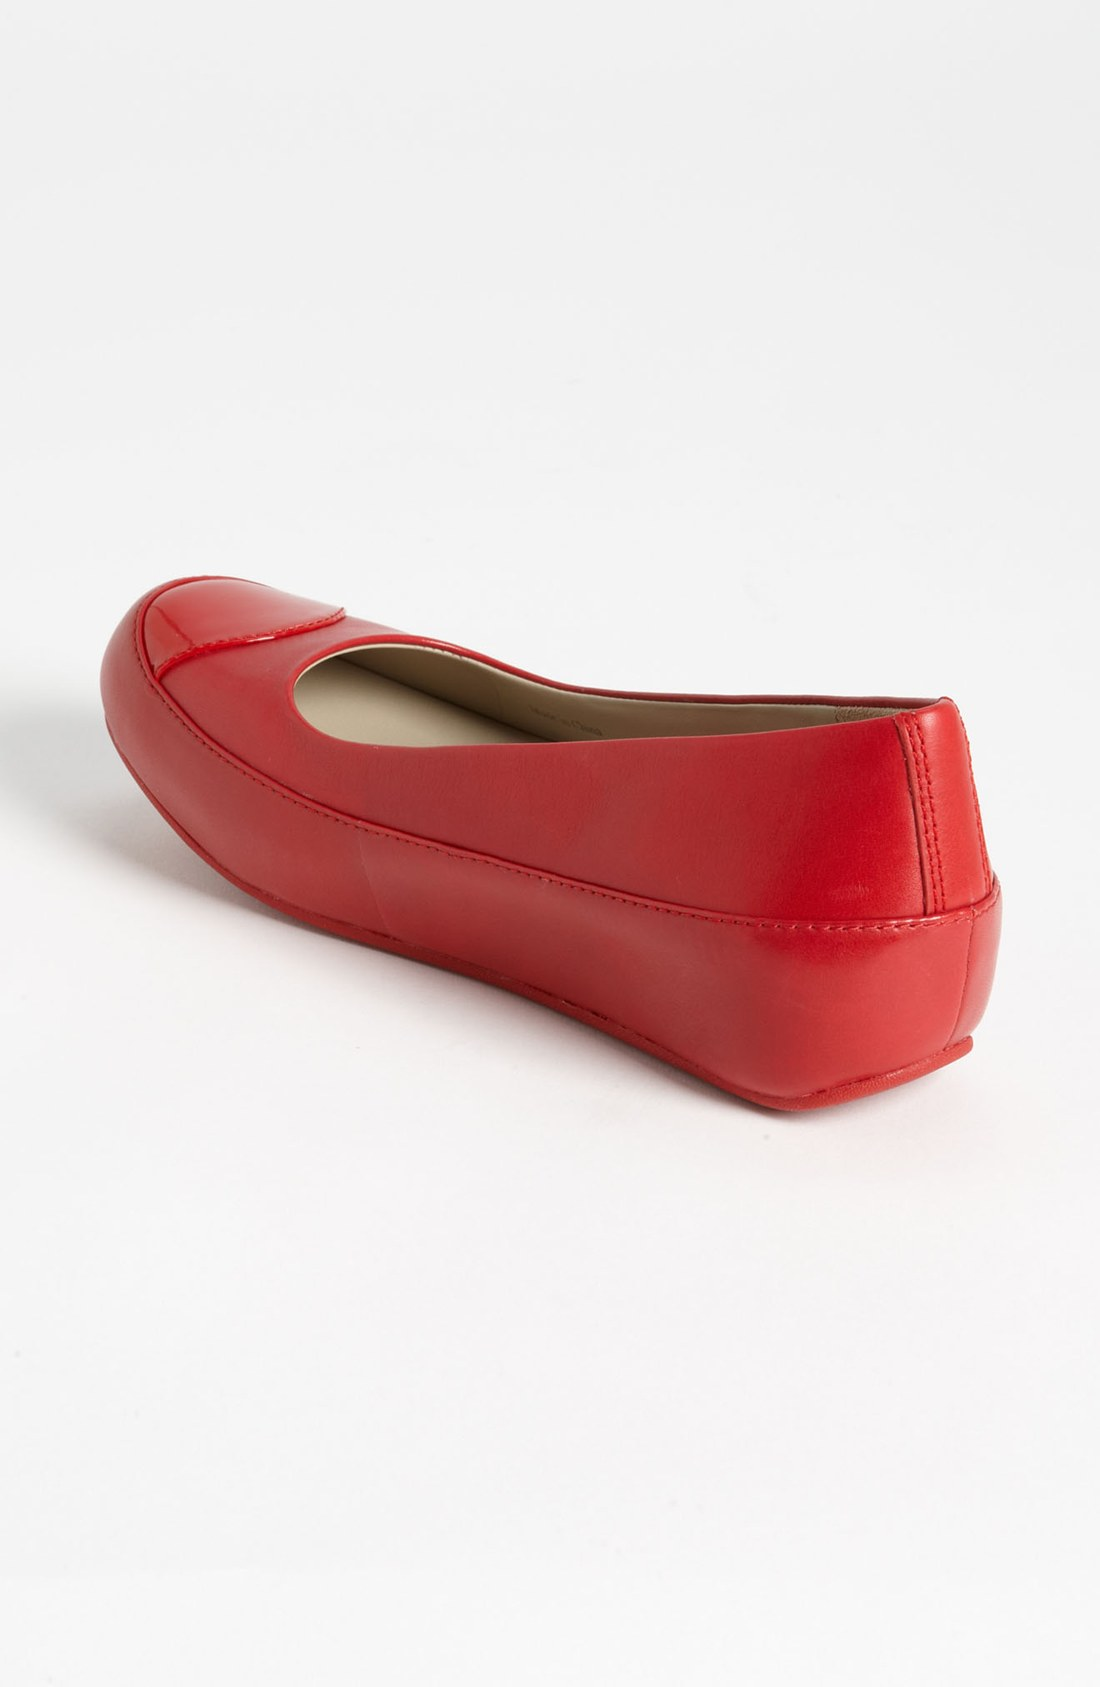 fitflop due leather rouge 1